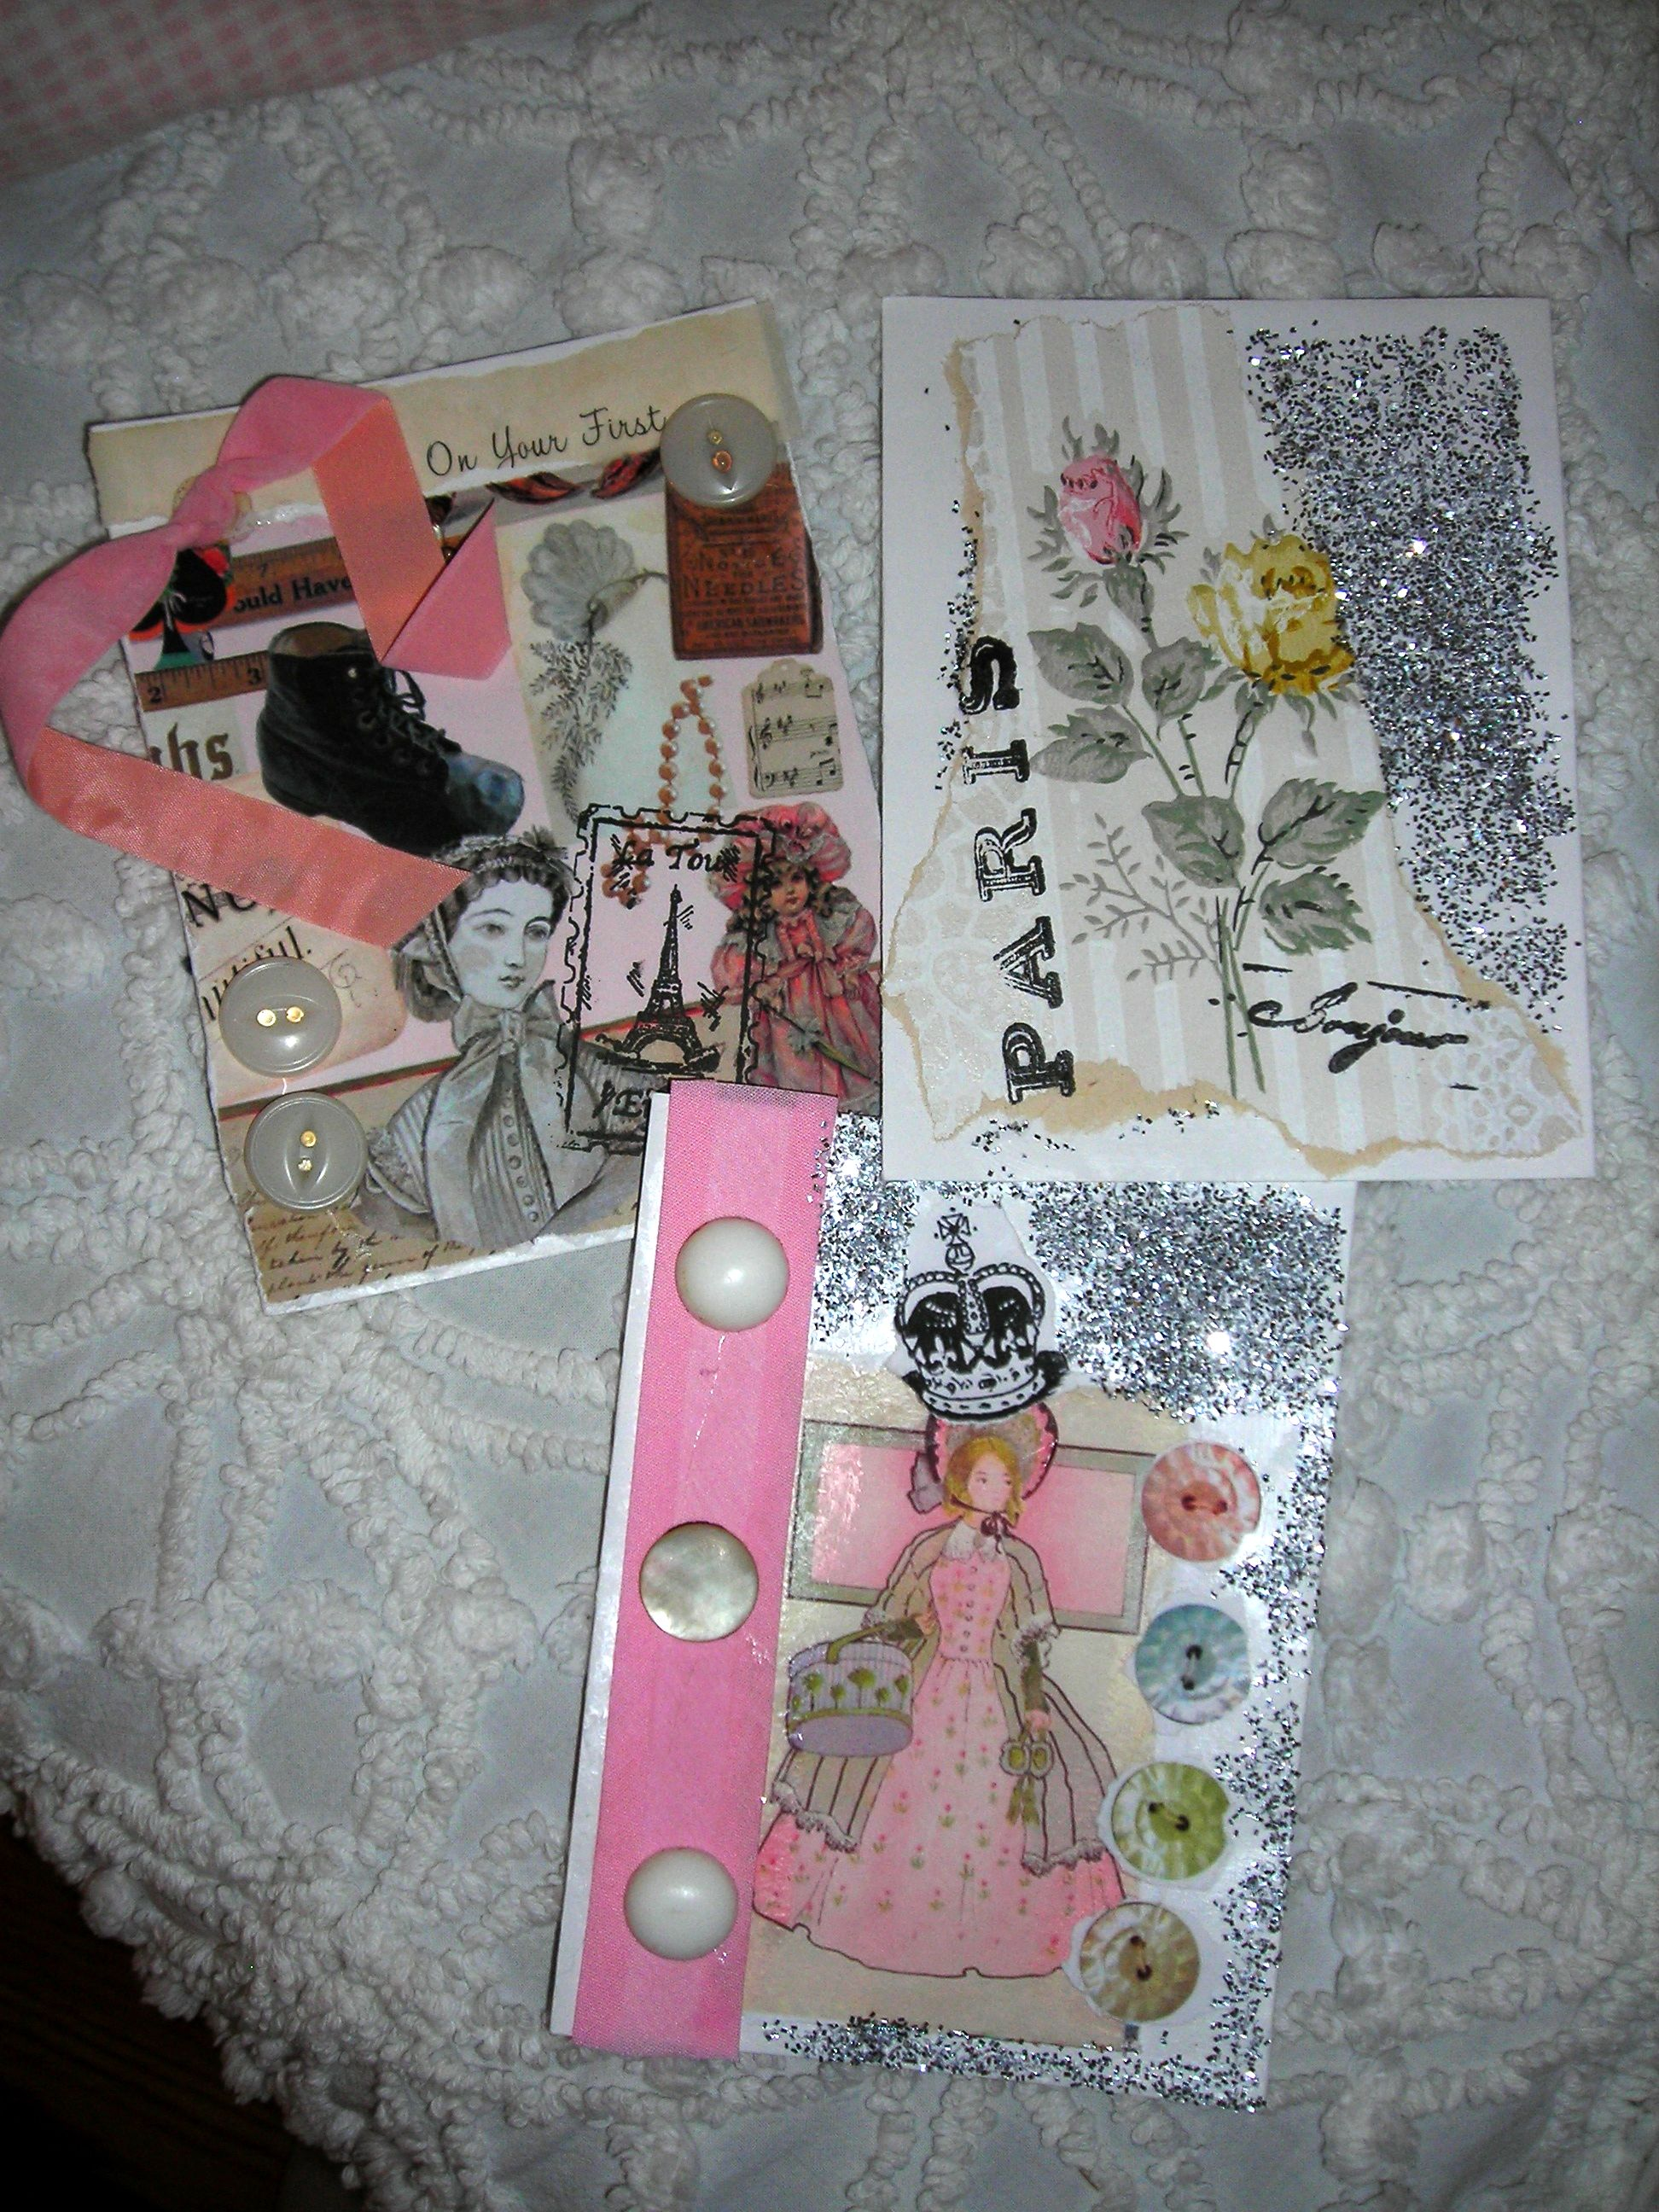 some handmade tags (yes, sue's stuff!)